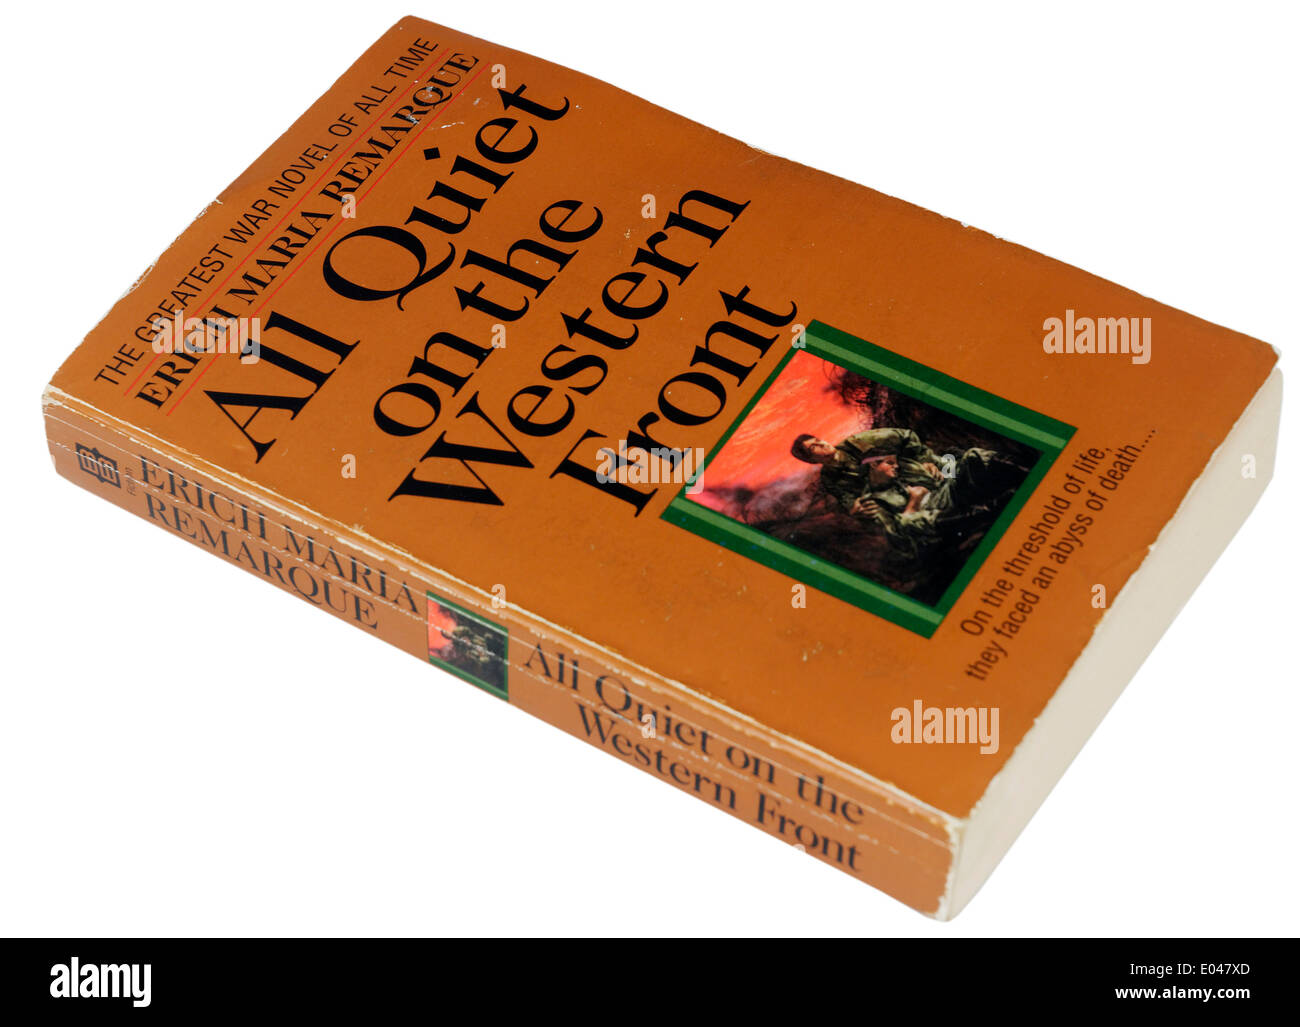 All Quiet on the Western Front by Erich Maria Remarque - Stock Image